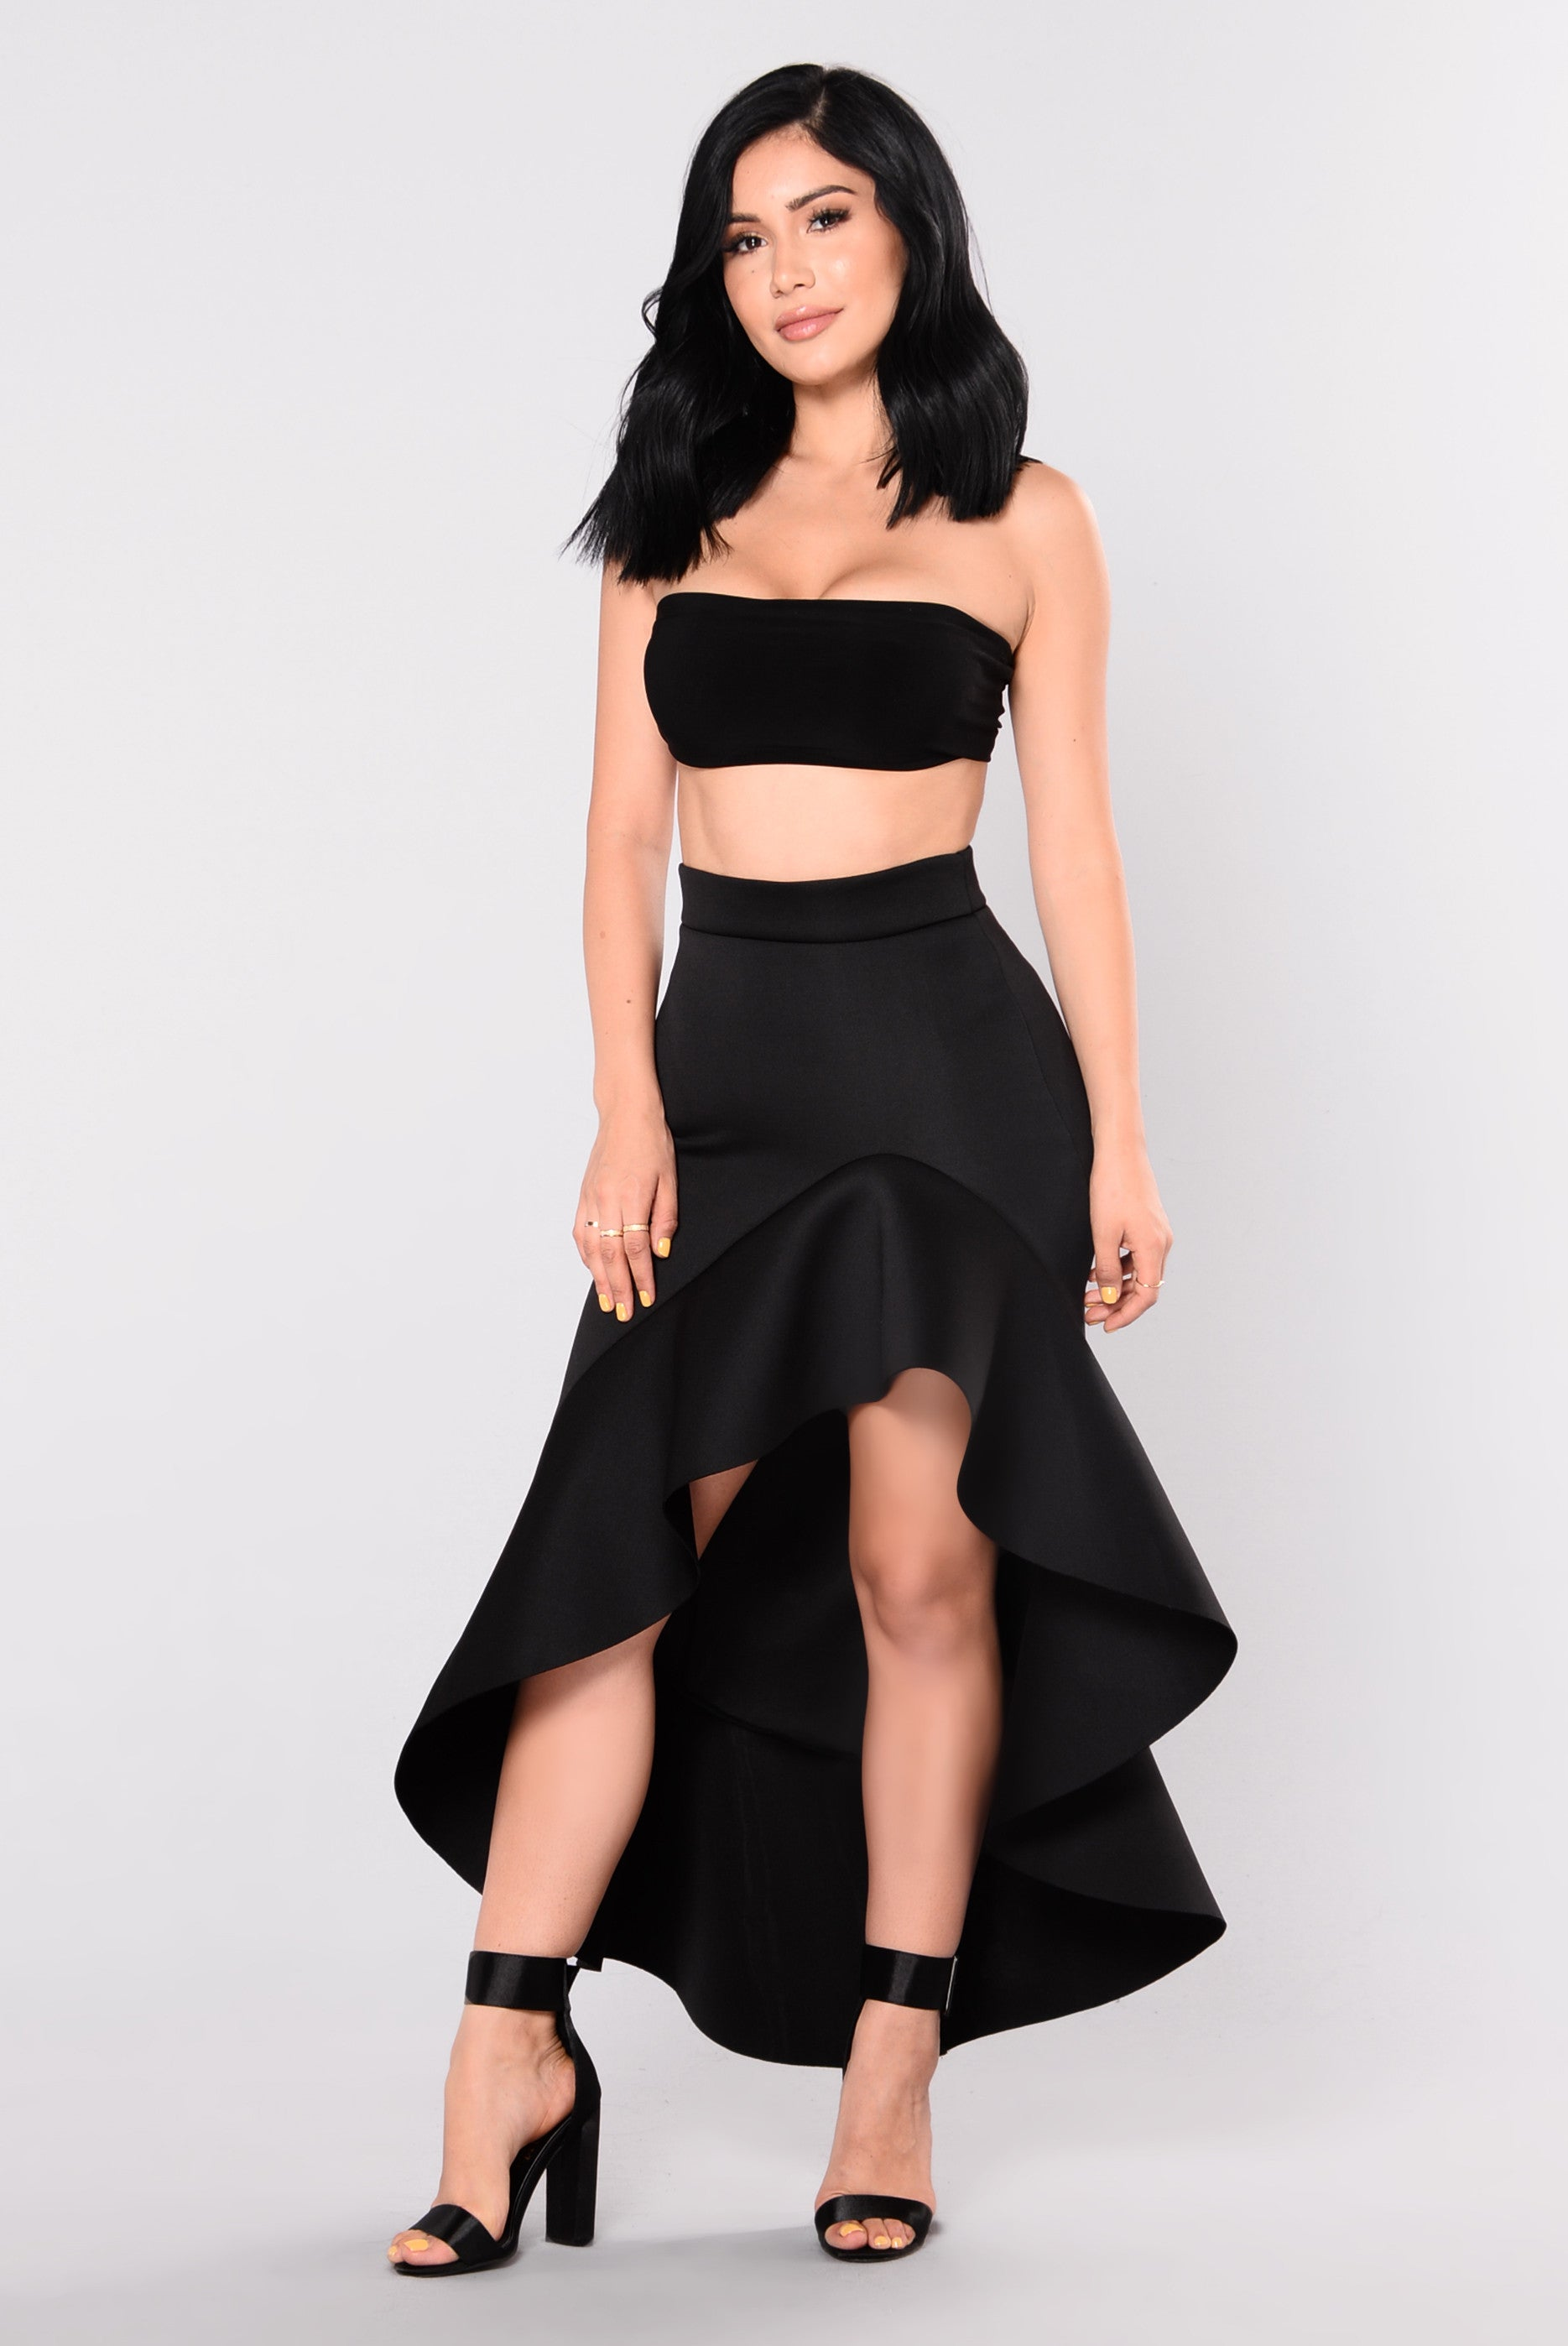 Find a great selection of women's skirts at worldofweapons.tk Shop for mini, maxi, pencil, high waisted, denim, and more from top brands like Topshop, Free people, Caslon, Levi's, Vince and more. Free shipping and returns.